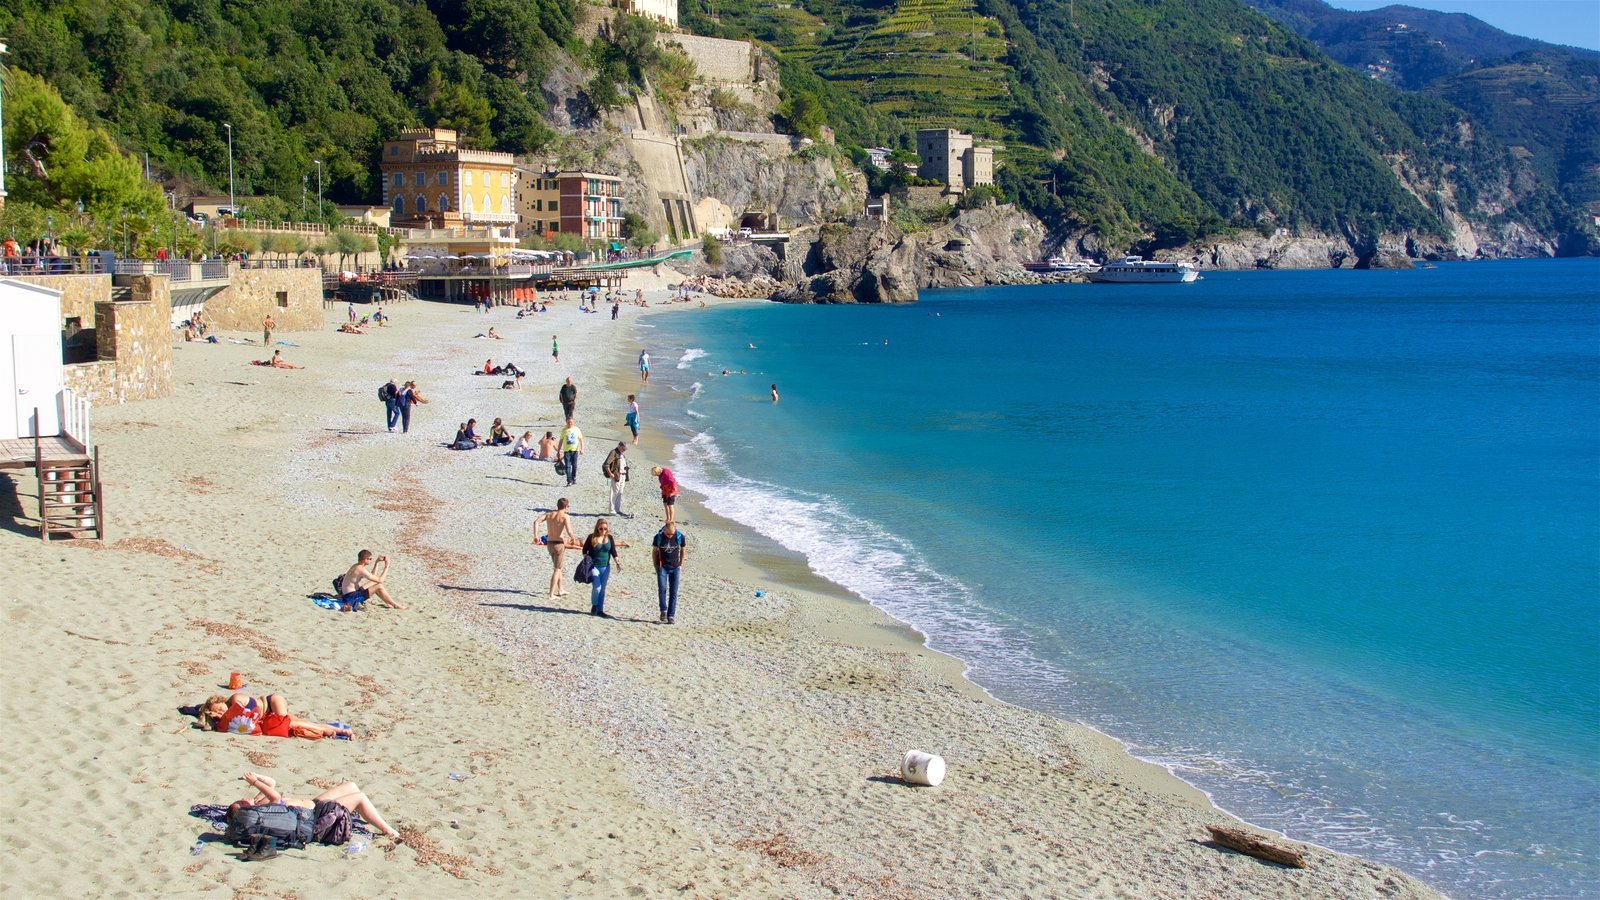 Monterosso al Mare featuring rugged coastline, a bay or harbor and a beach